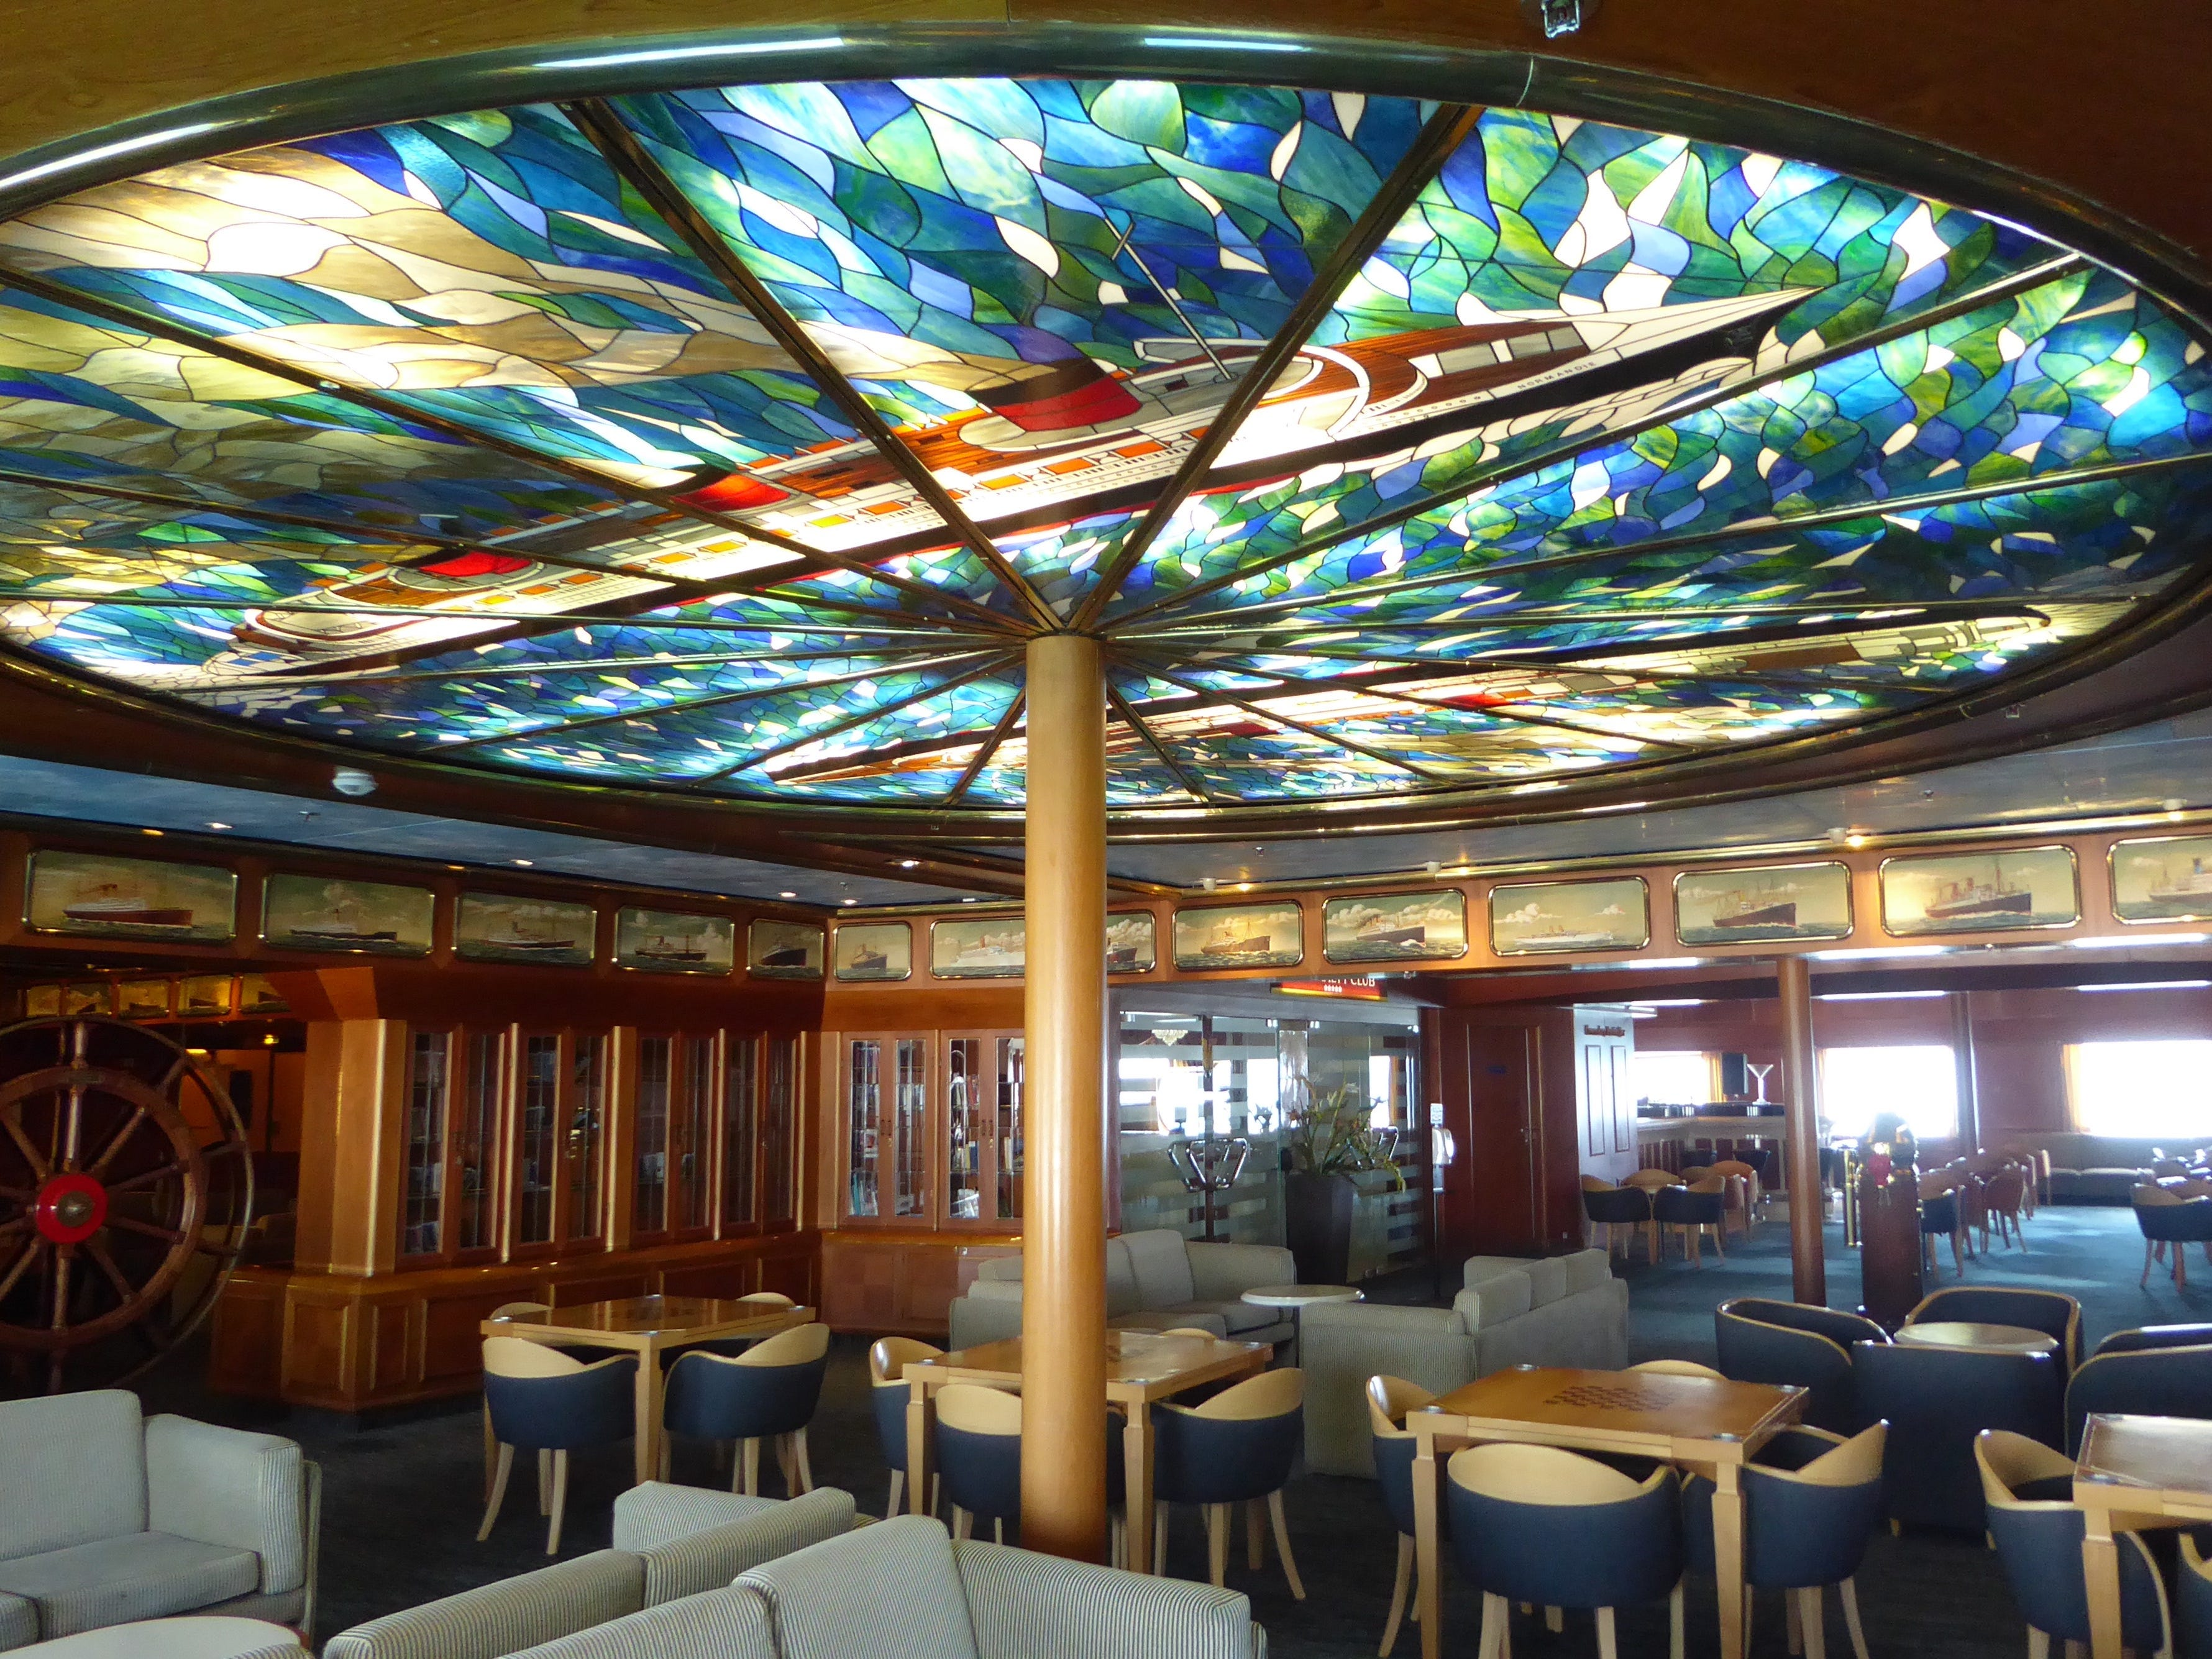 The Helm's decorative centerpiece is a stained glass ceiling designed by Carnival architect Joseph Farcus depicting the original Queen Mary and its rival, French Line's Normandie.